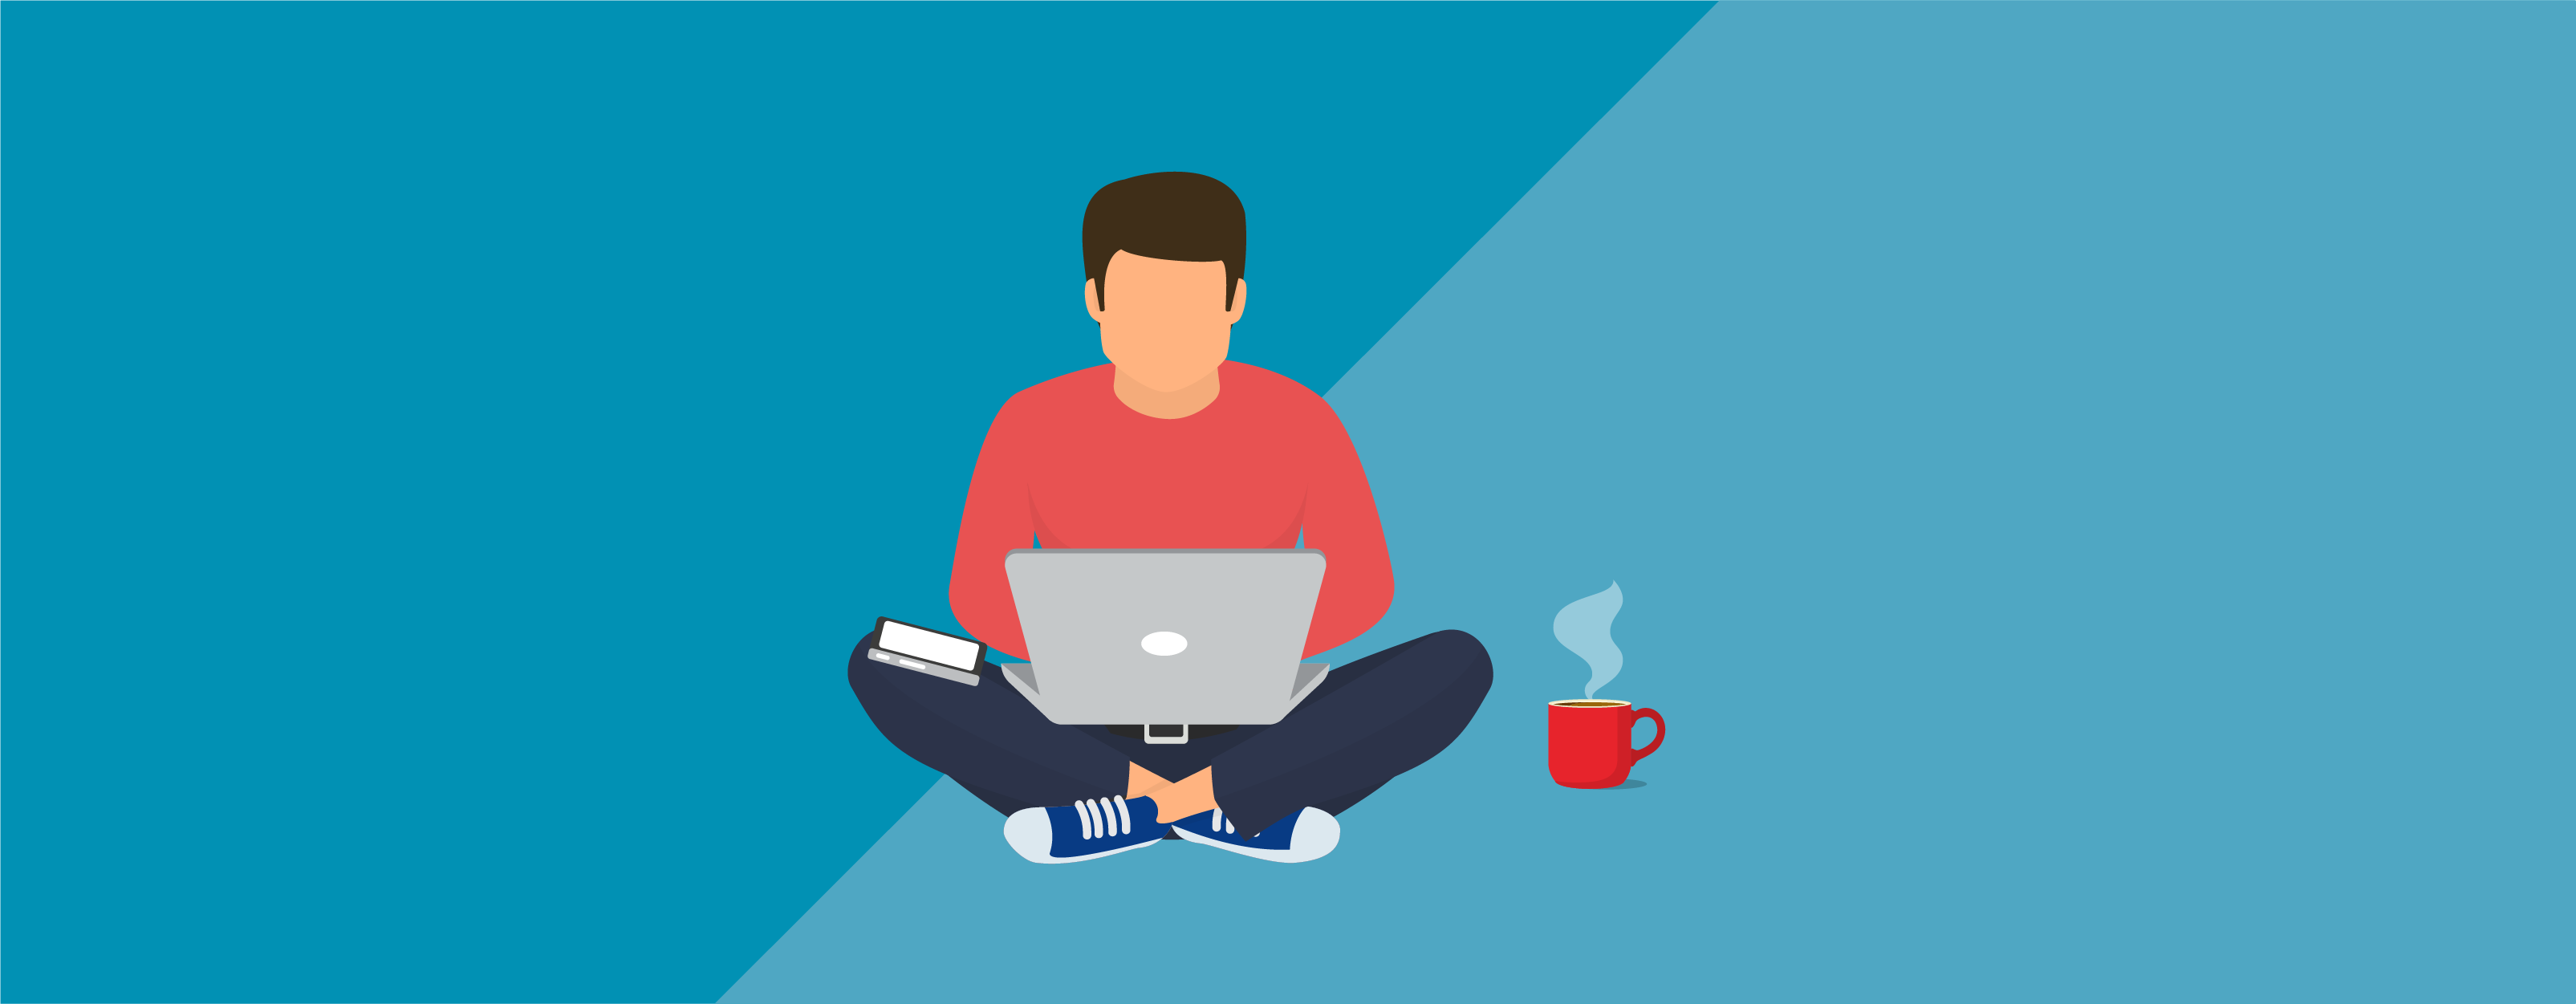 millenial-sitting-with-computer-graphic